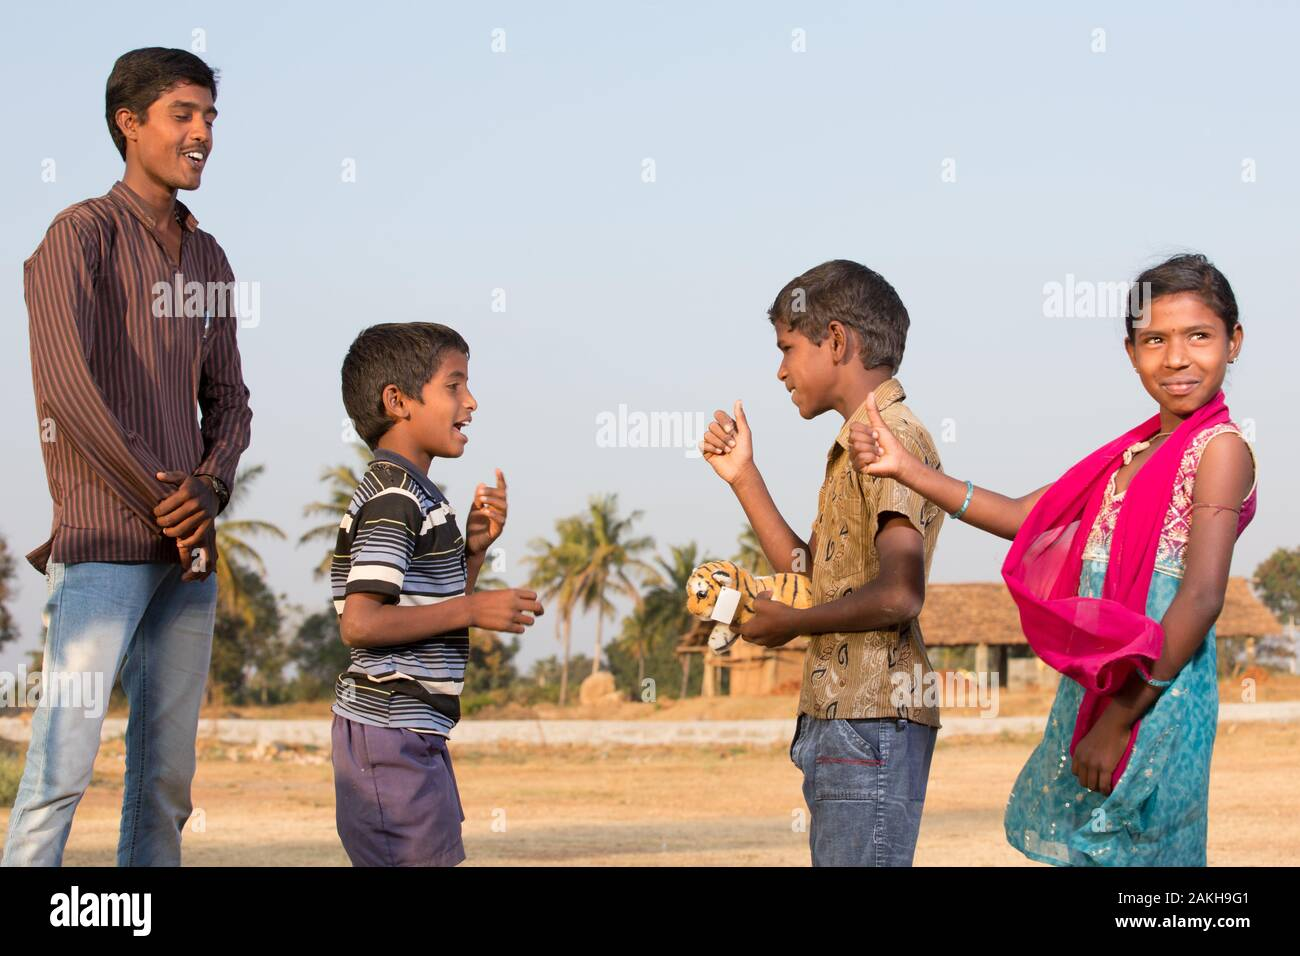 CAPTION: As After-School Club (ASC) Coordinator Ravikumar observes, Mahadev Swamy - who has speech and hearing difficulties - engages with non-disable Stock Photo